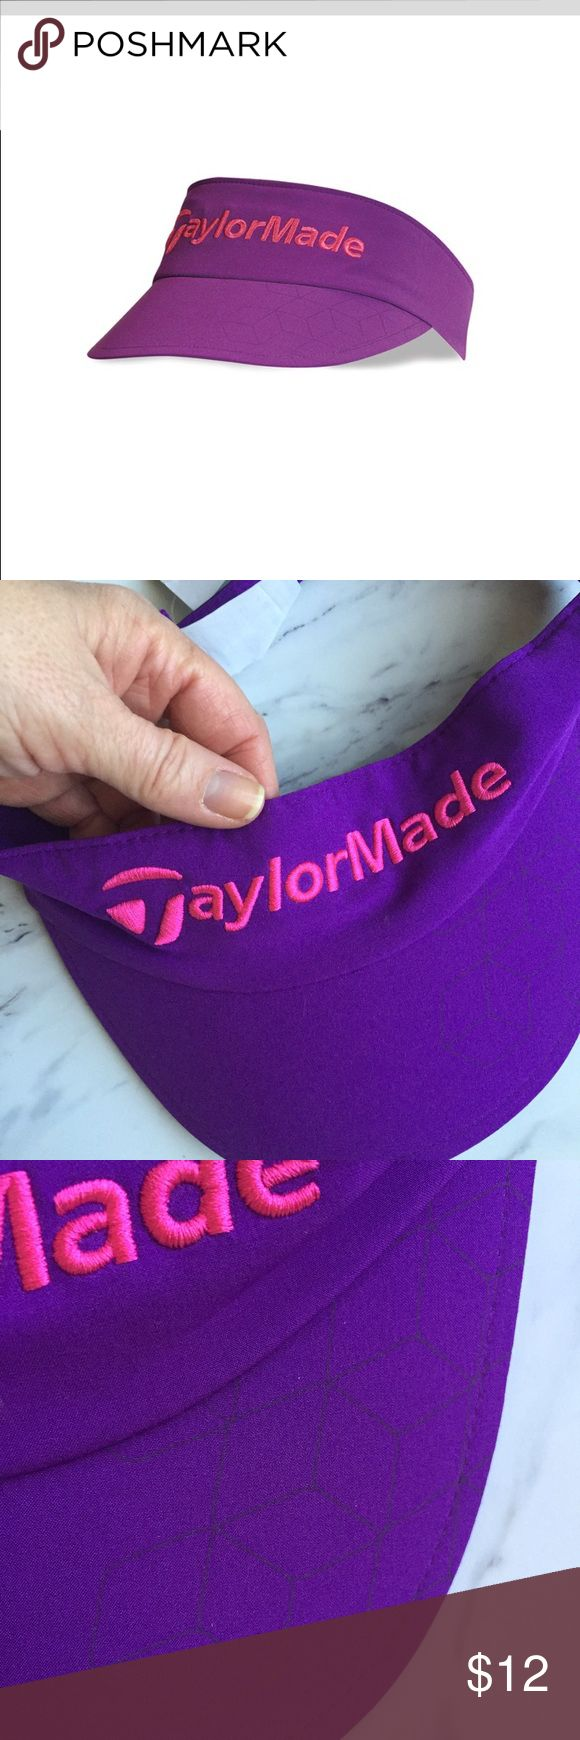 Taylor Made visor NWT Brand new Taylor Made women's visor. Never worn. Cool print on bill shown in pic. Taylor Made Accessories Hats